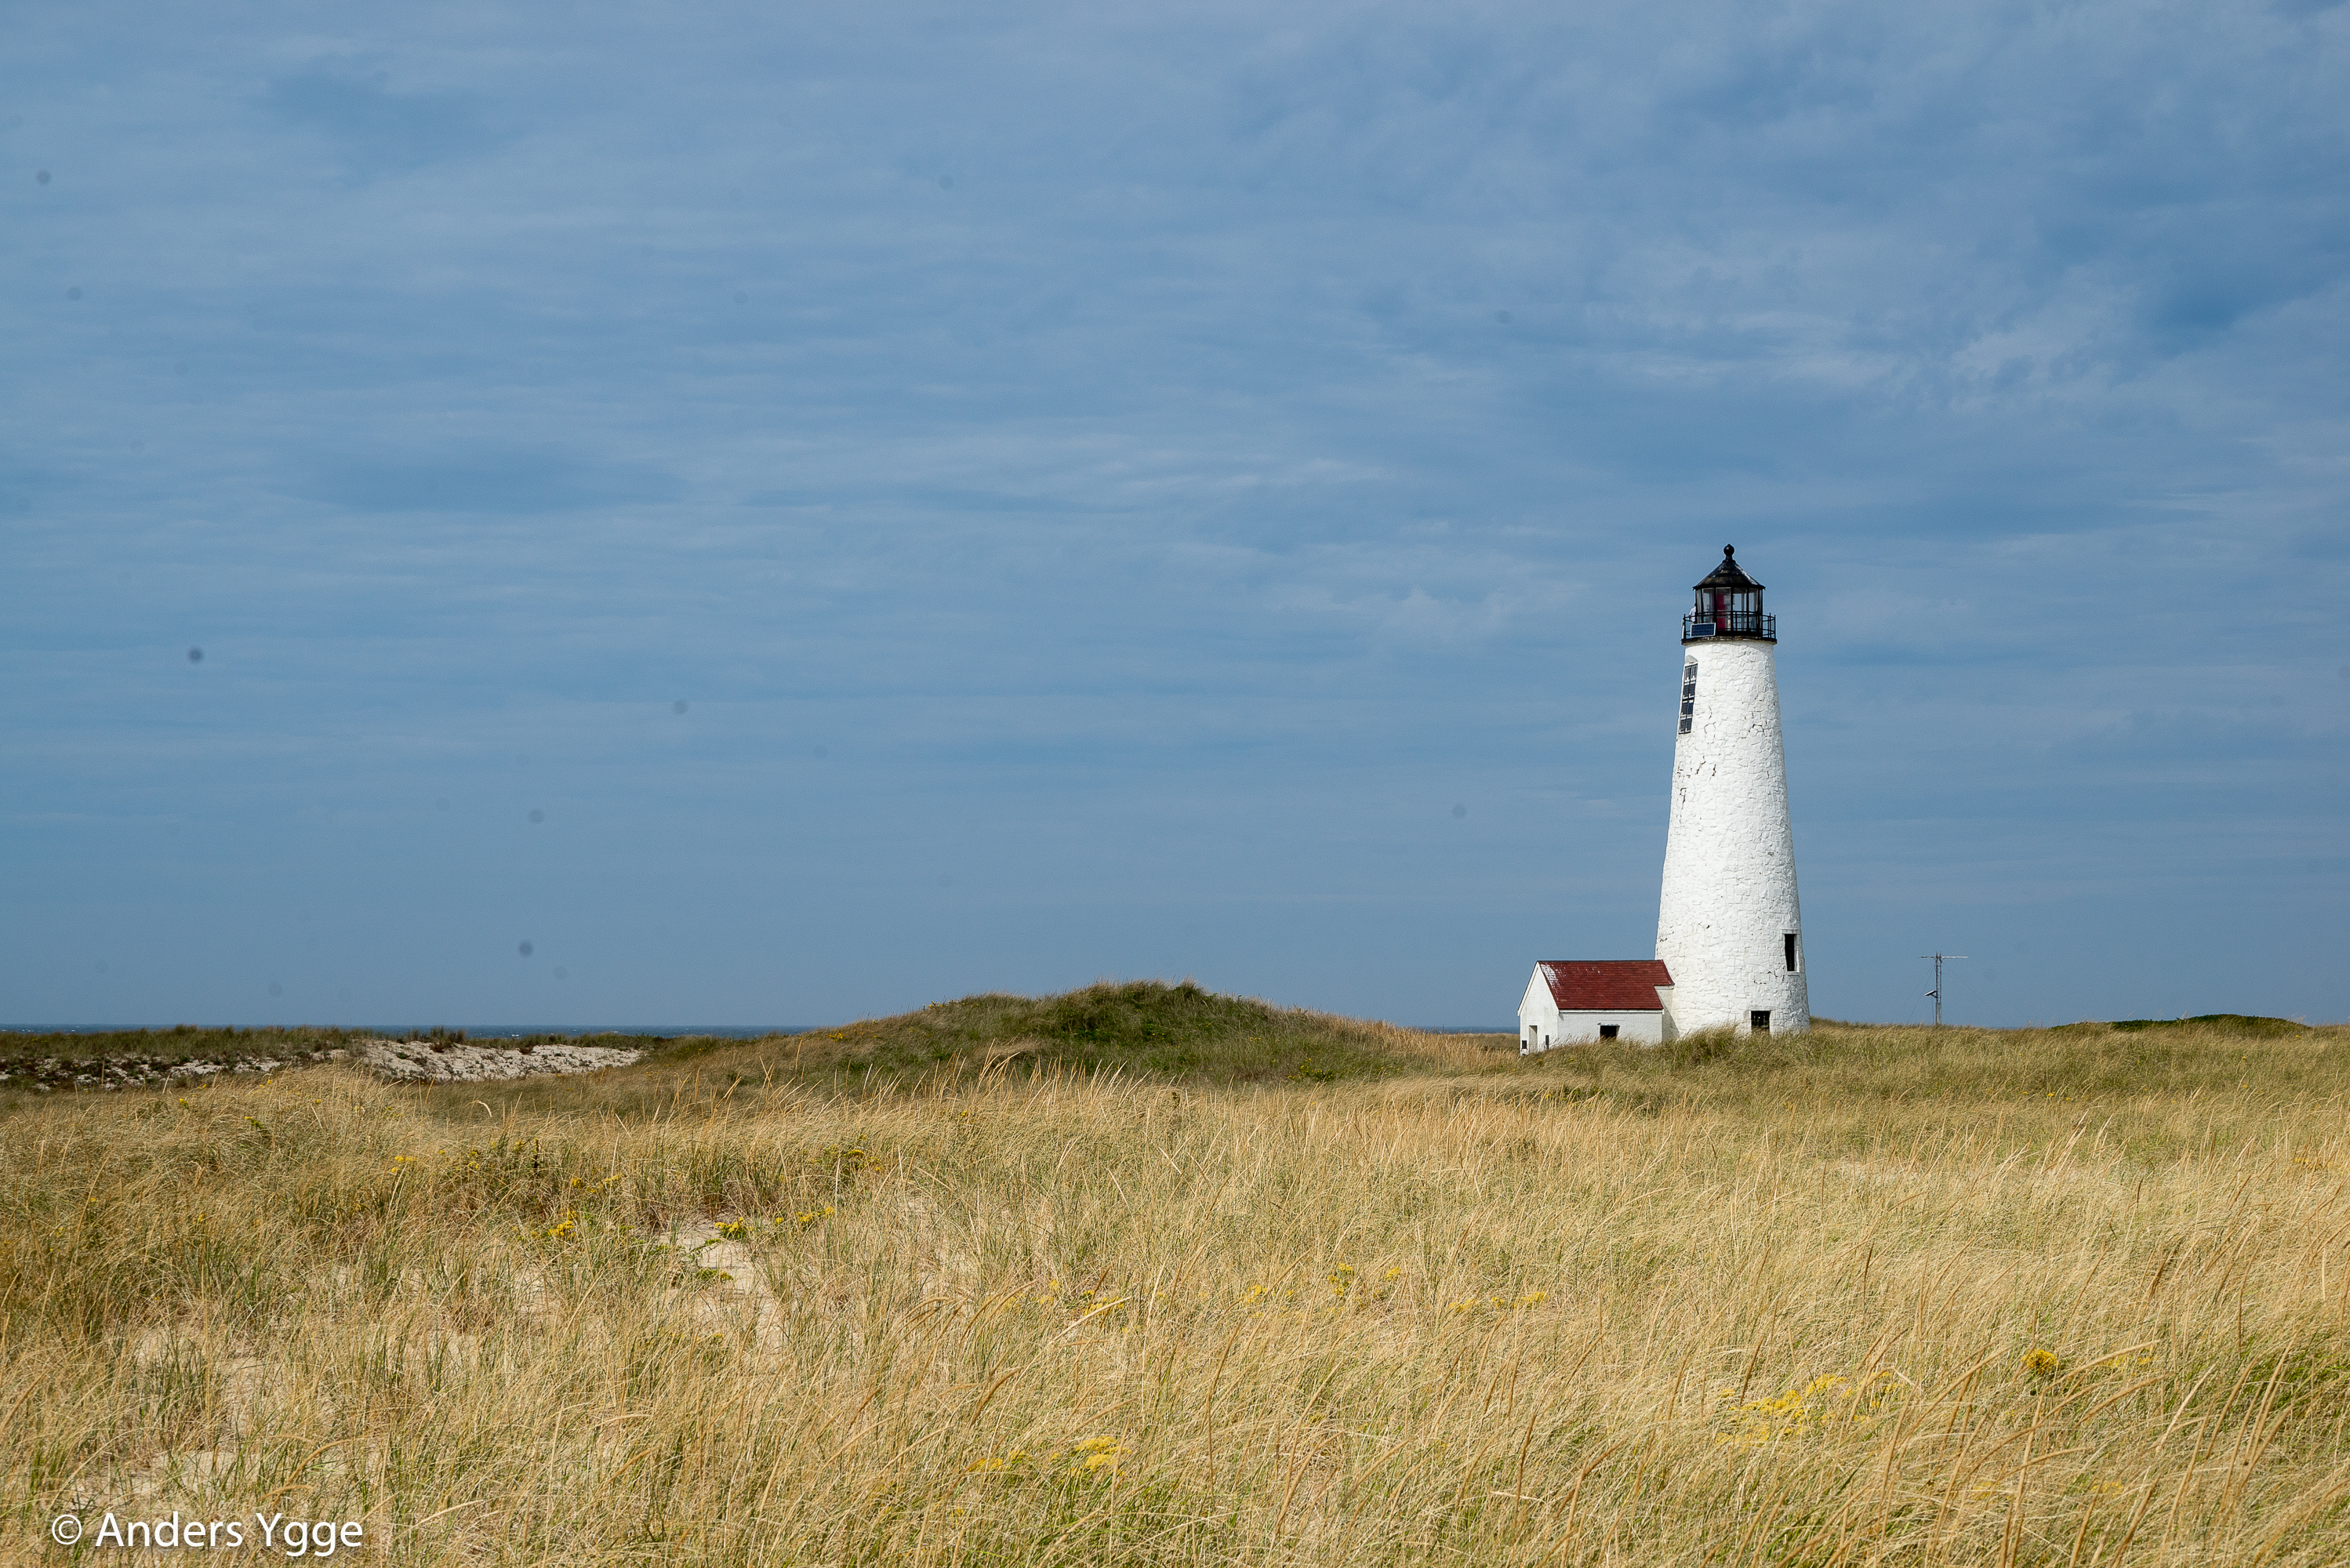 Great Point L, Nantucket, USA